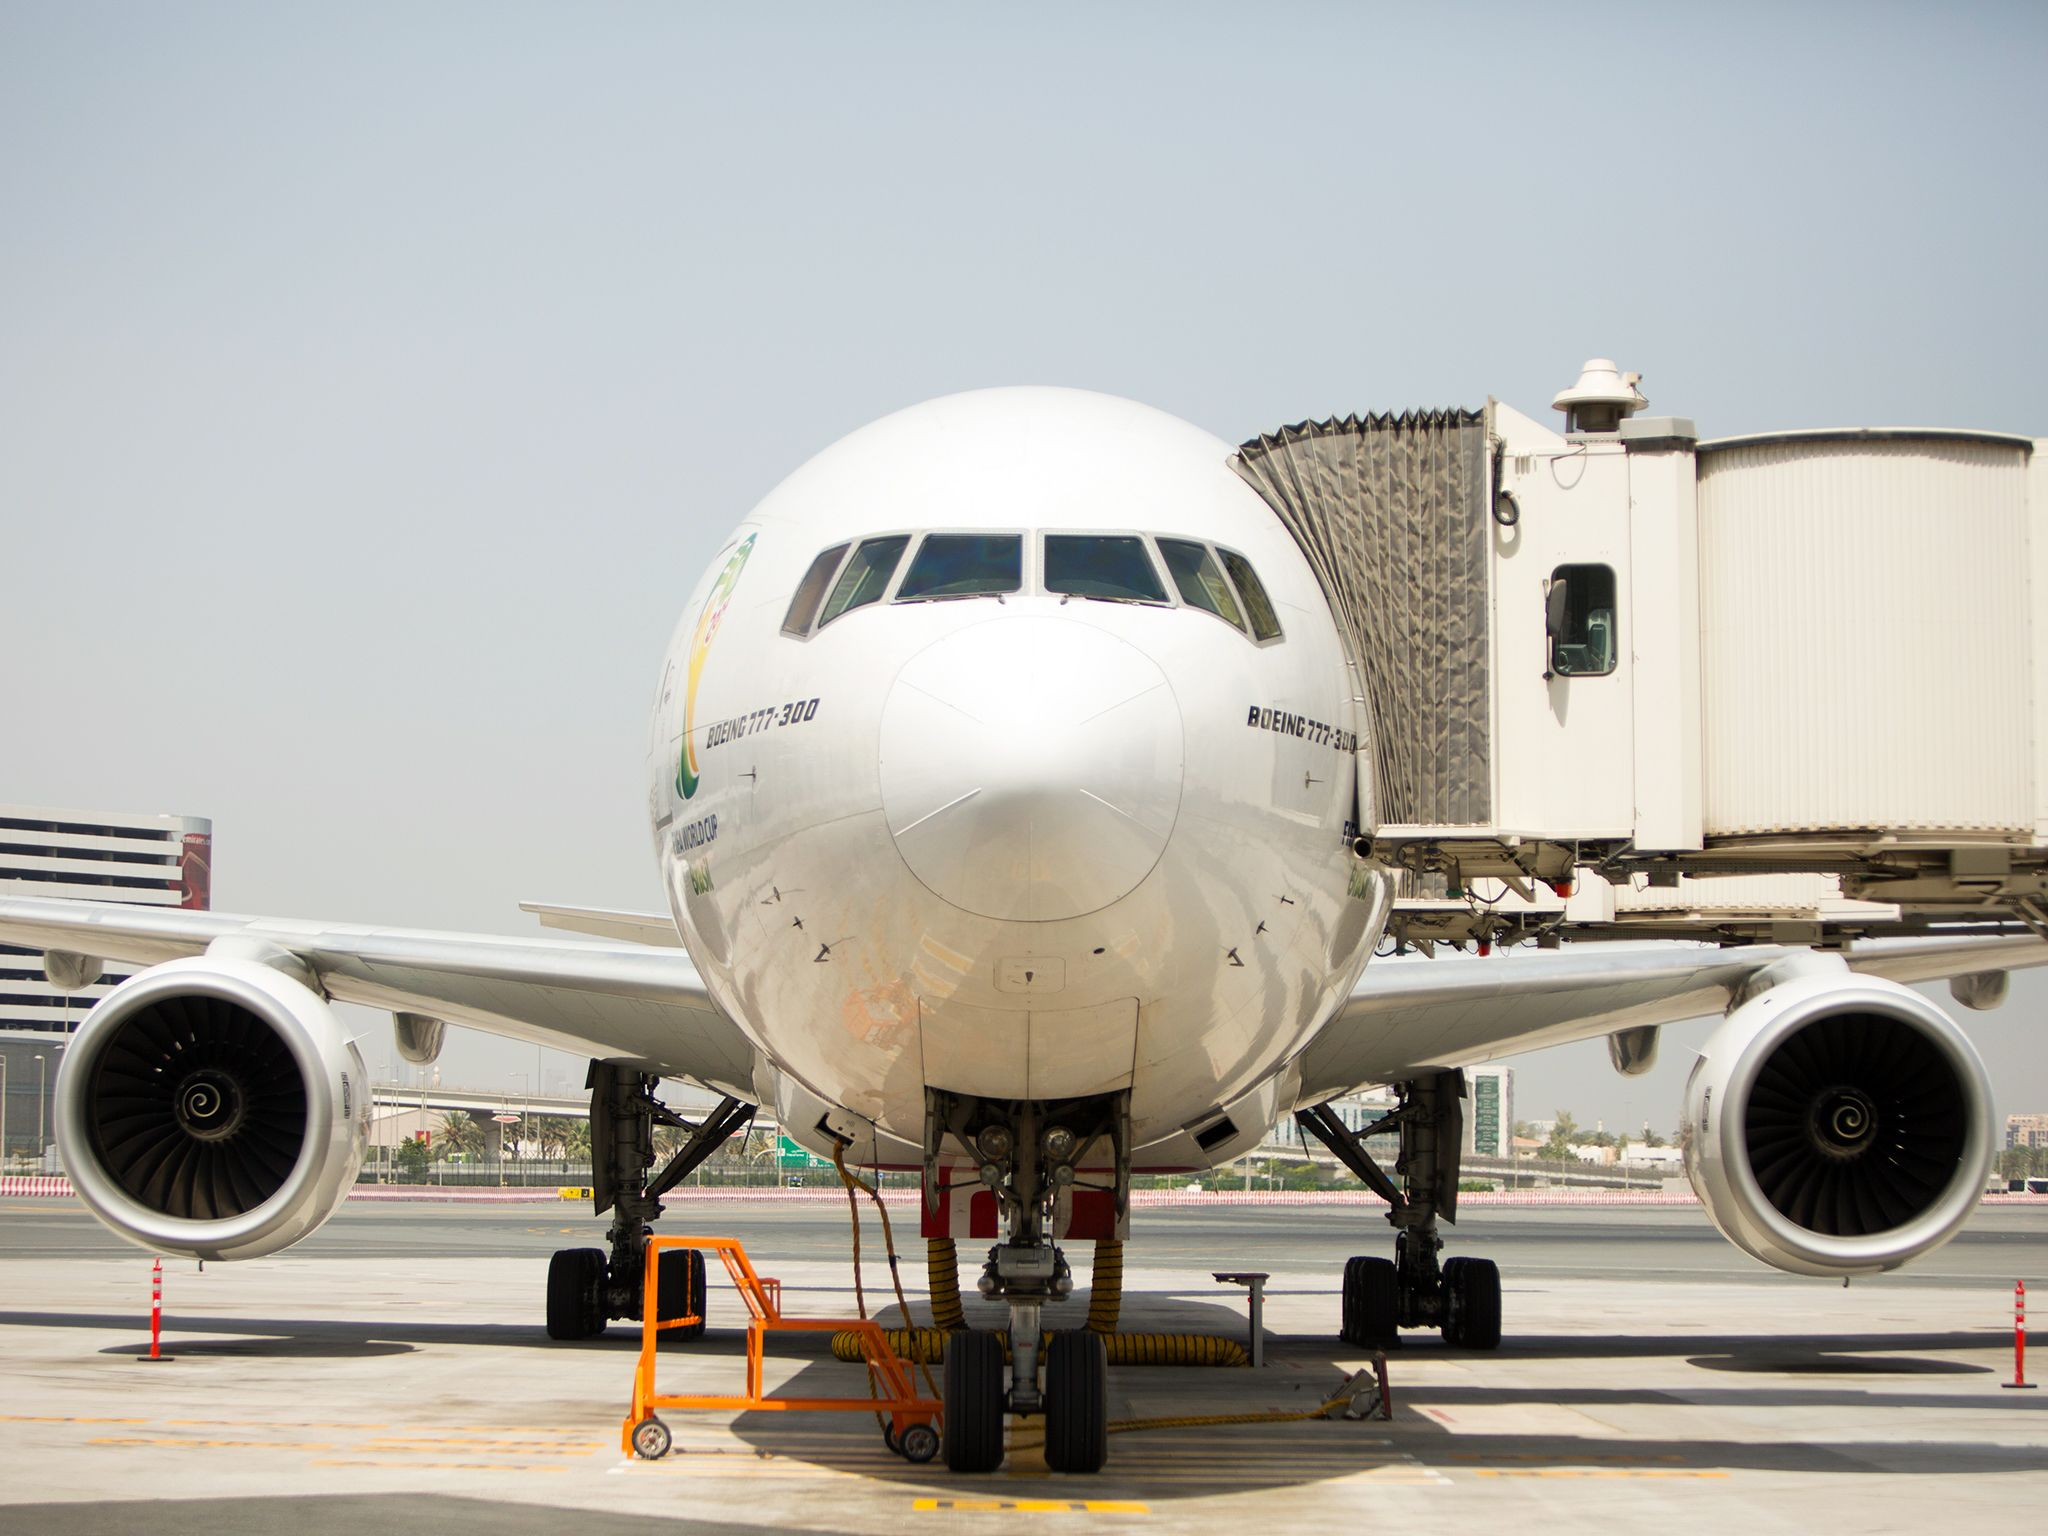 Dubai Airport, UAE: Shot of a Boeing 777-300, parked at stand, front view, aerobridge attached.... [Photo of the day - December 2014]